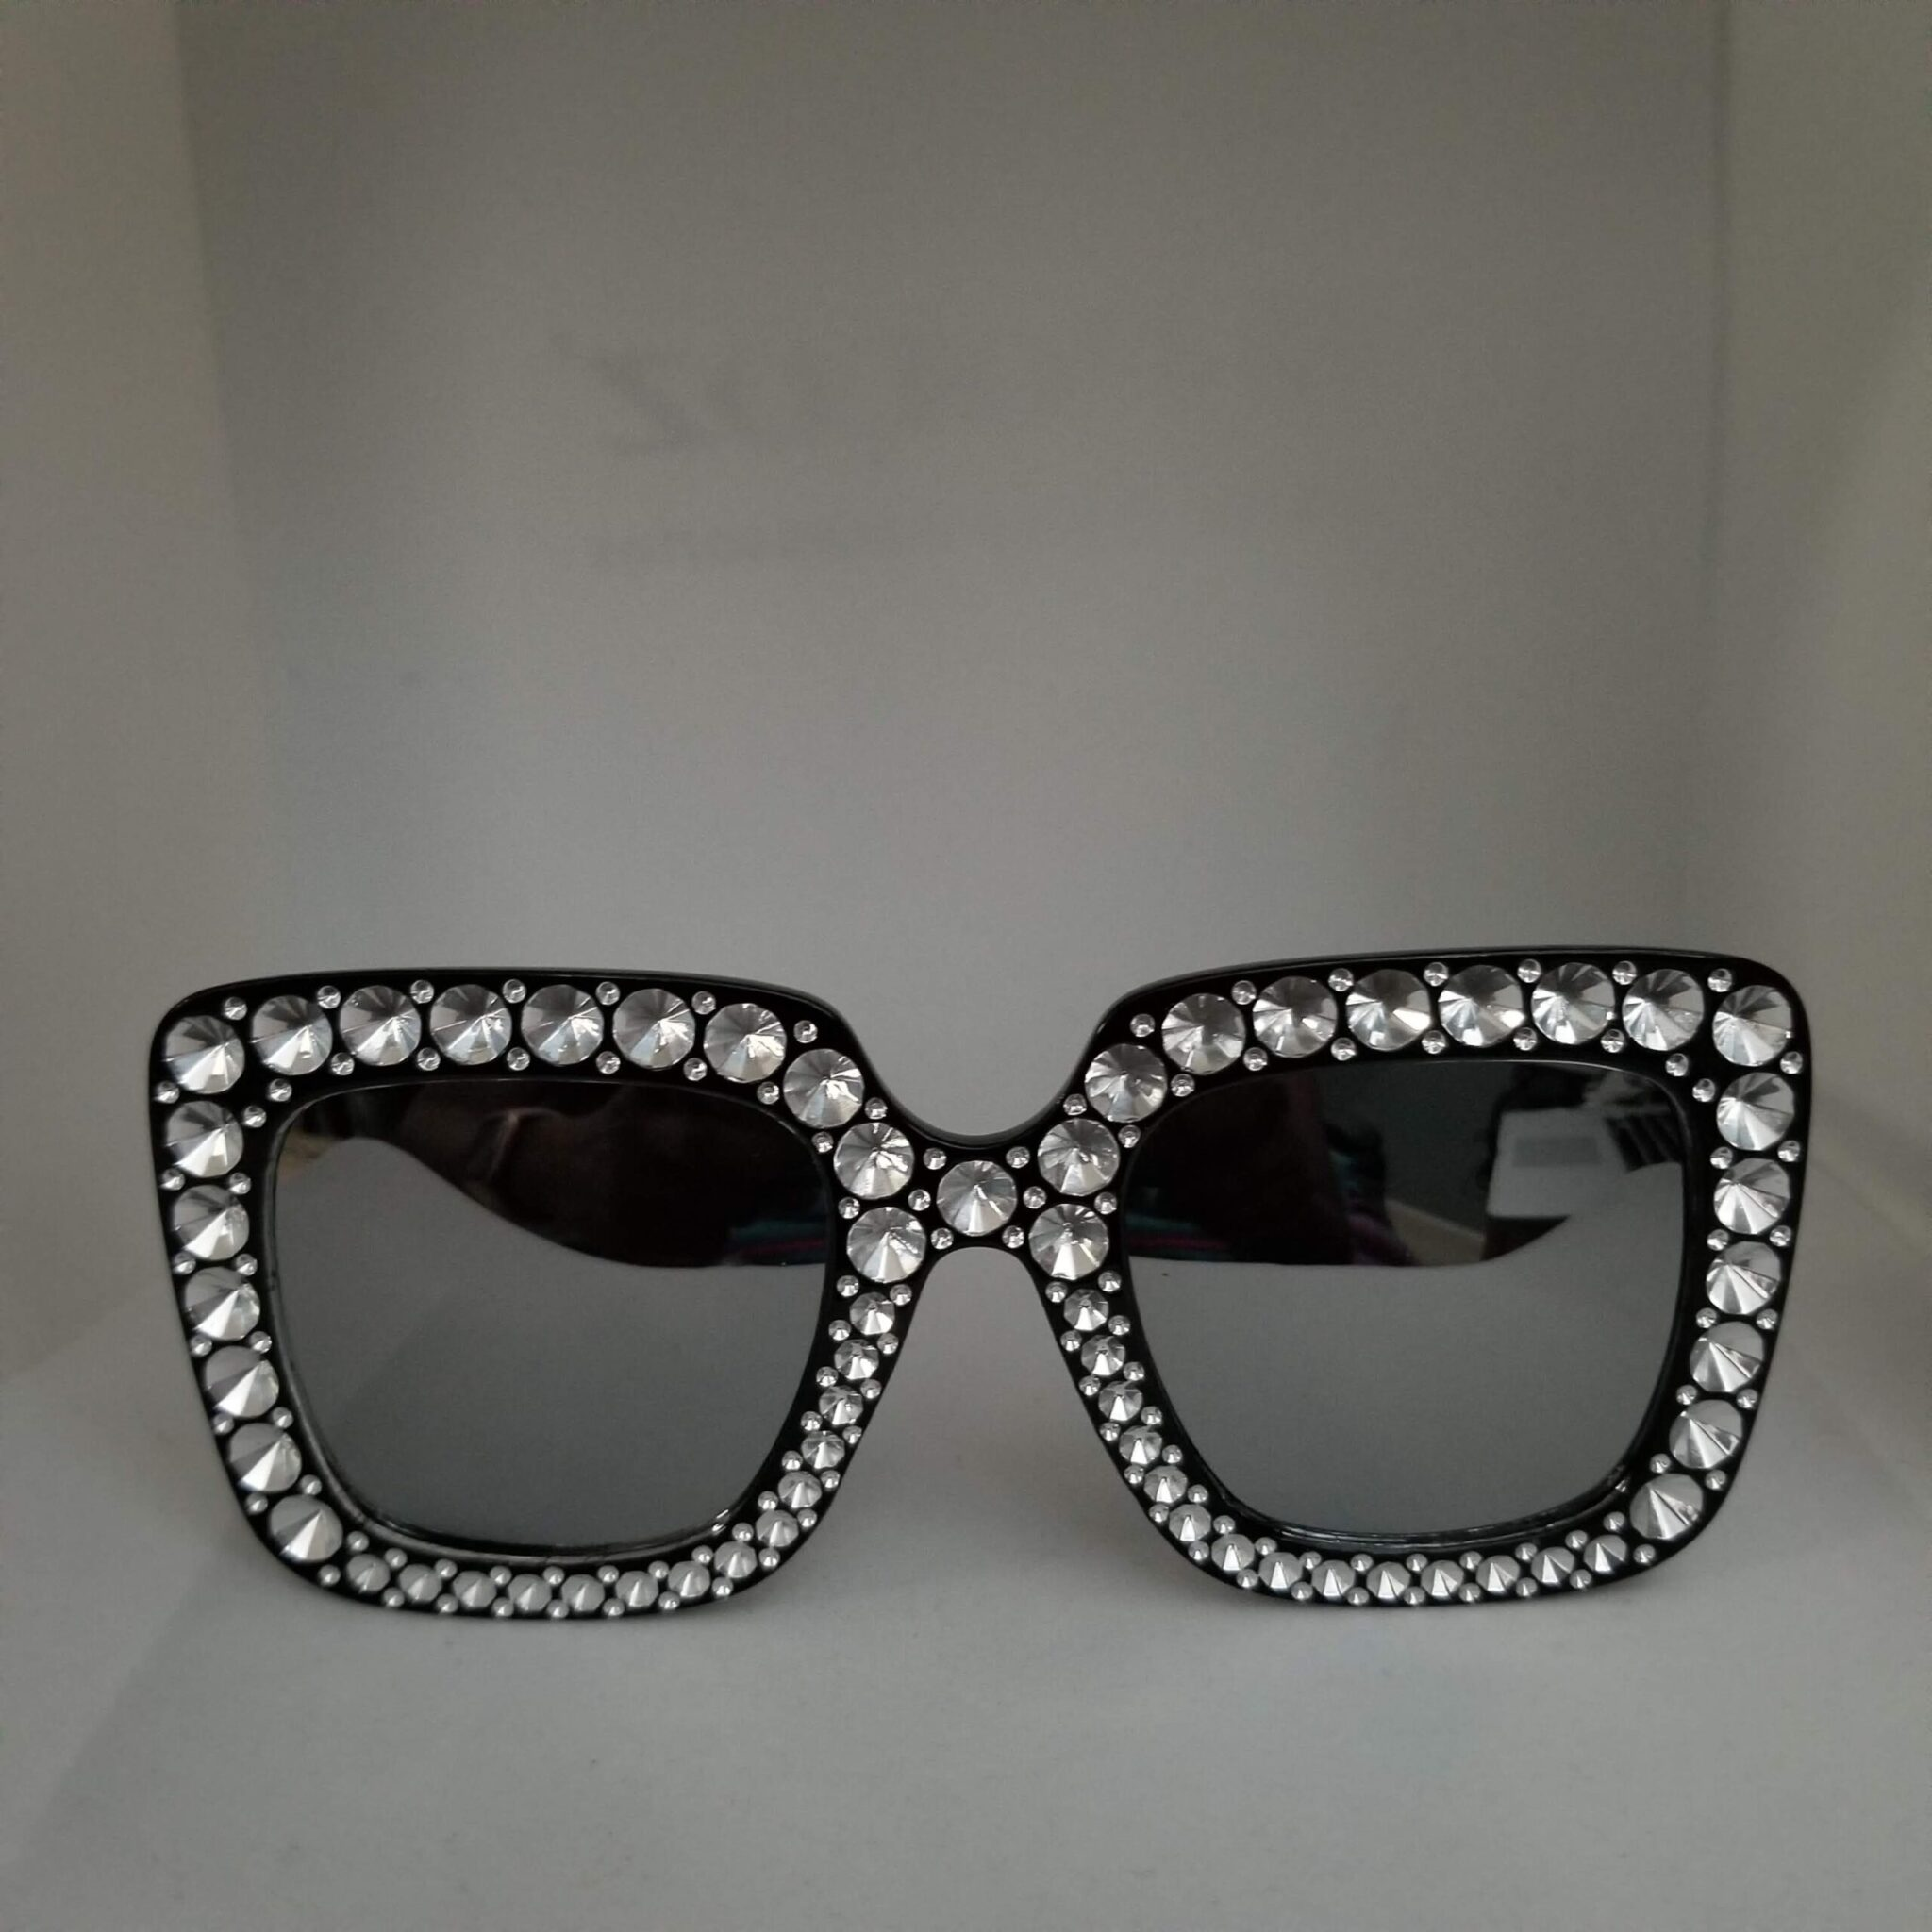 Designer Inspired Black Bling Glasses